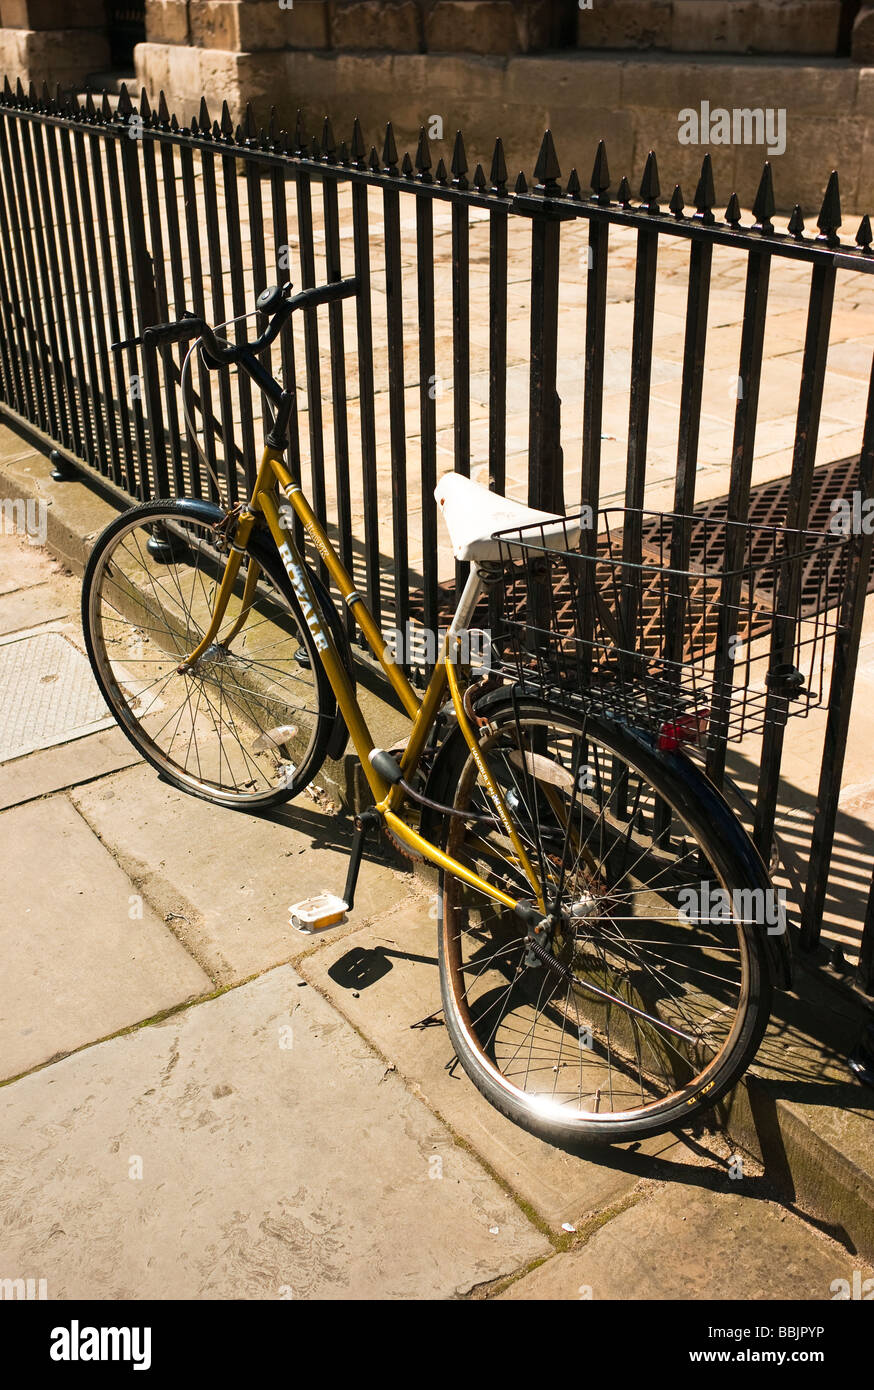 Royale Hawk hand built icycle damaged while secured to railings in Oxford UK - Stock Image